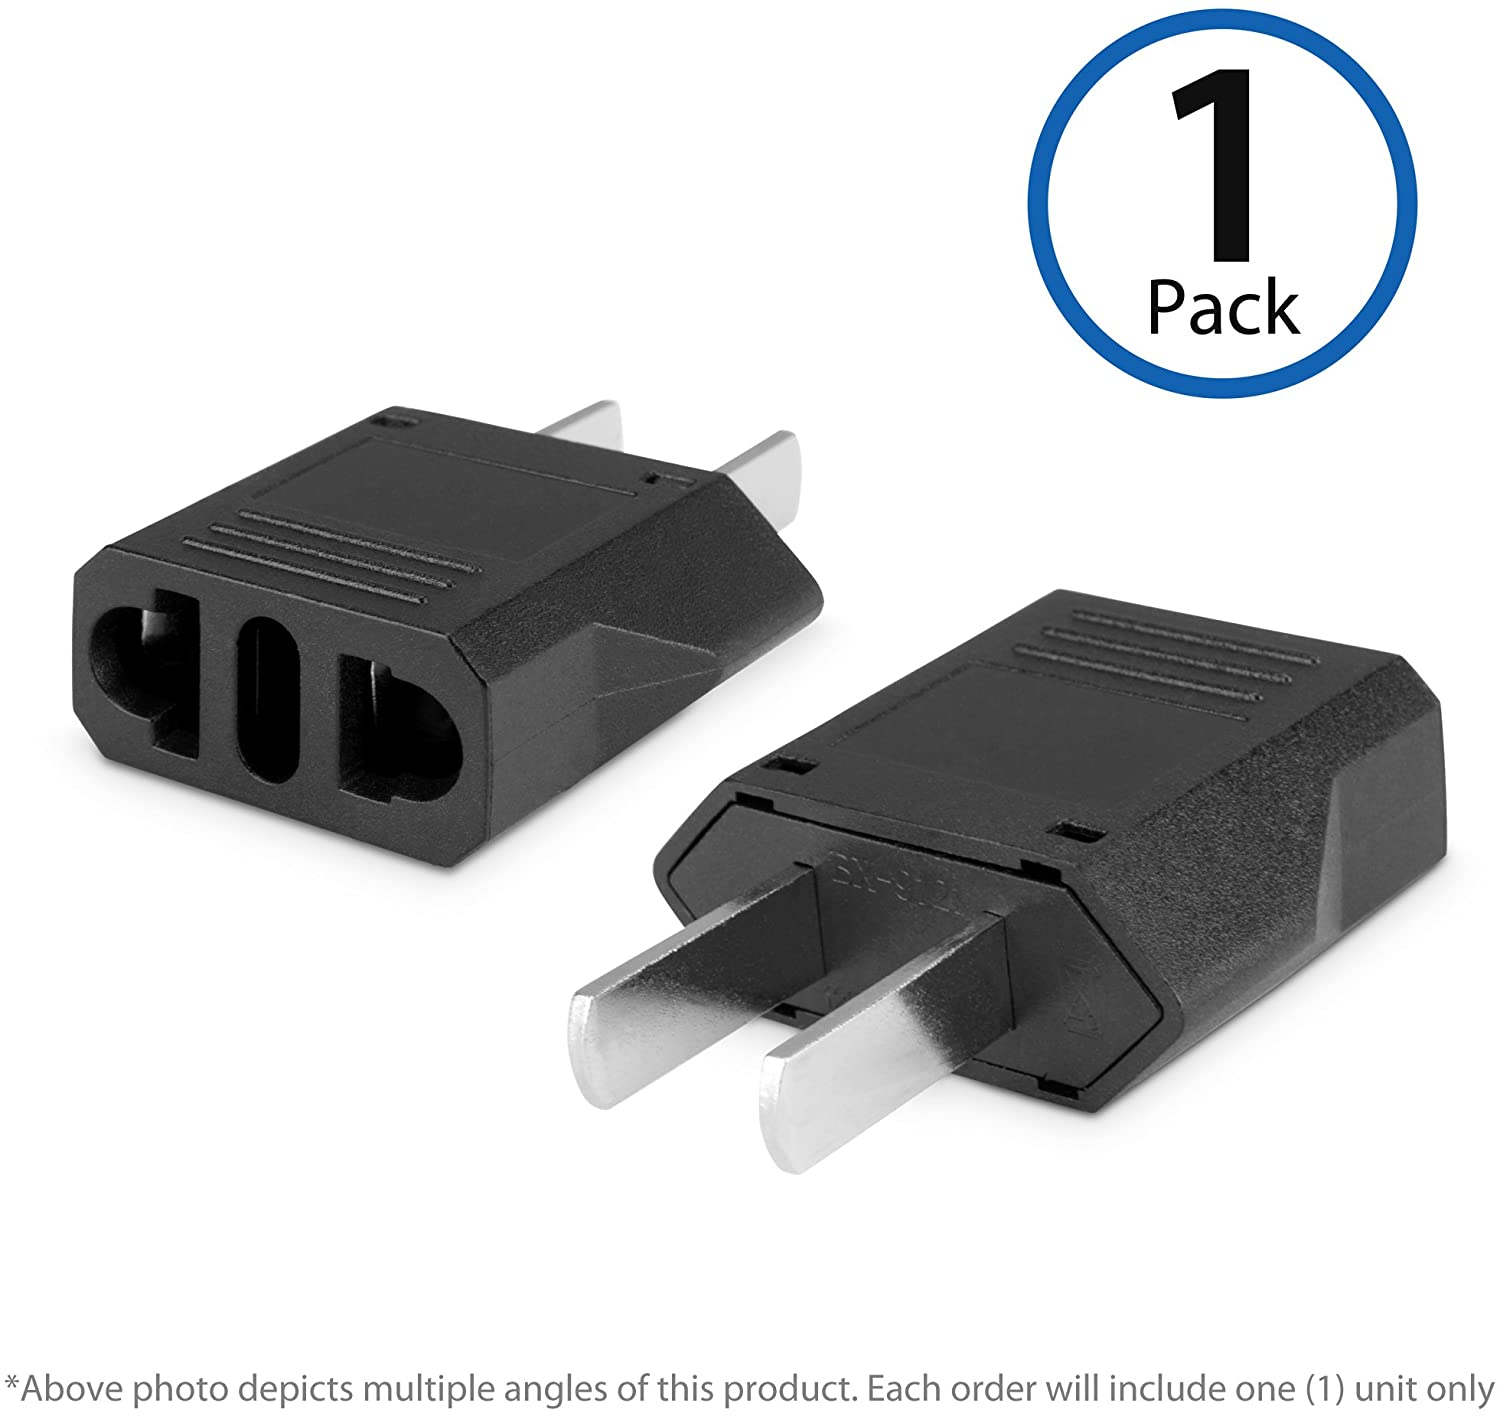 BoxWave European to American Outlet Plug Adapter,Black,Euro to US Adapter - Type B